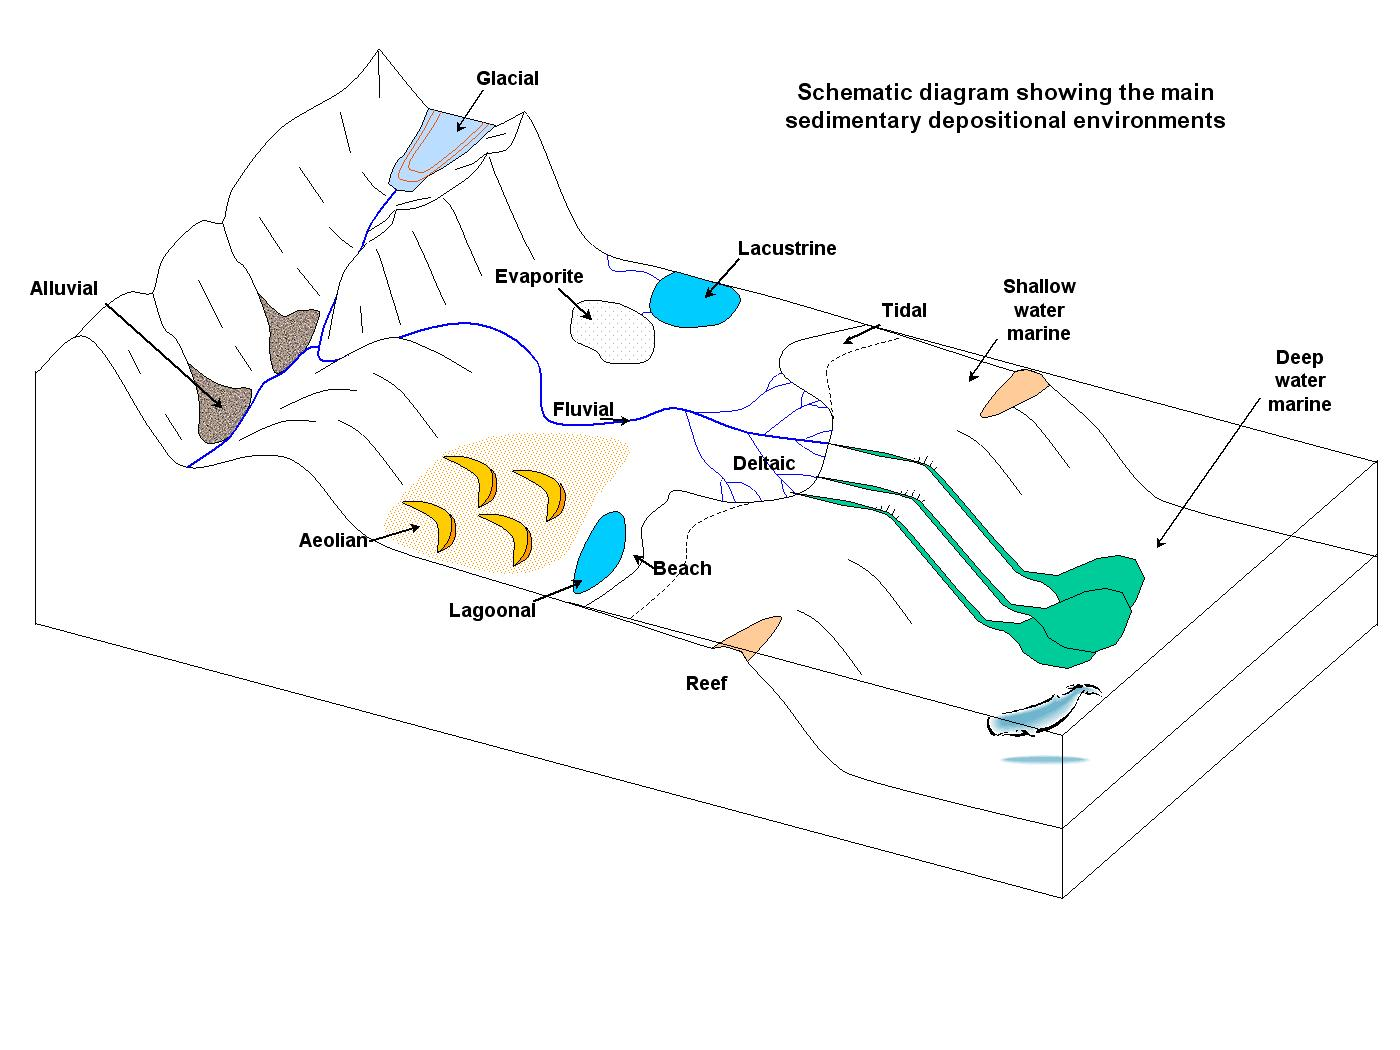 hight resolution of schematic diagram that of mountain range to sea floor that shows various depositional environments